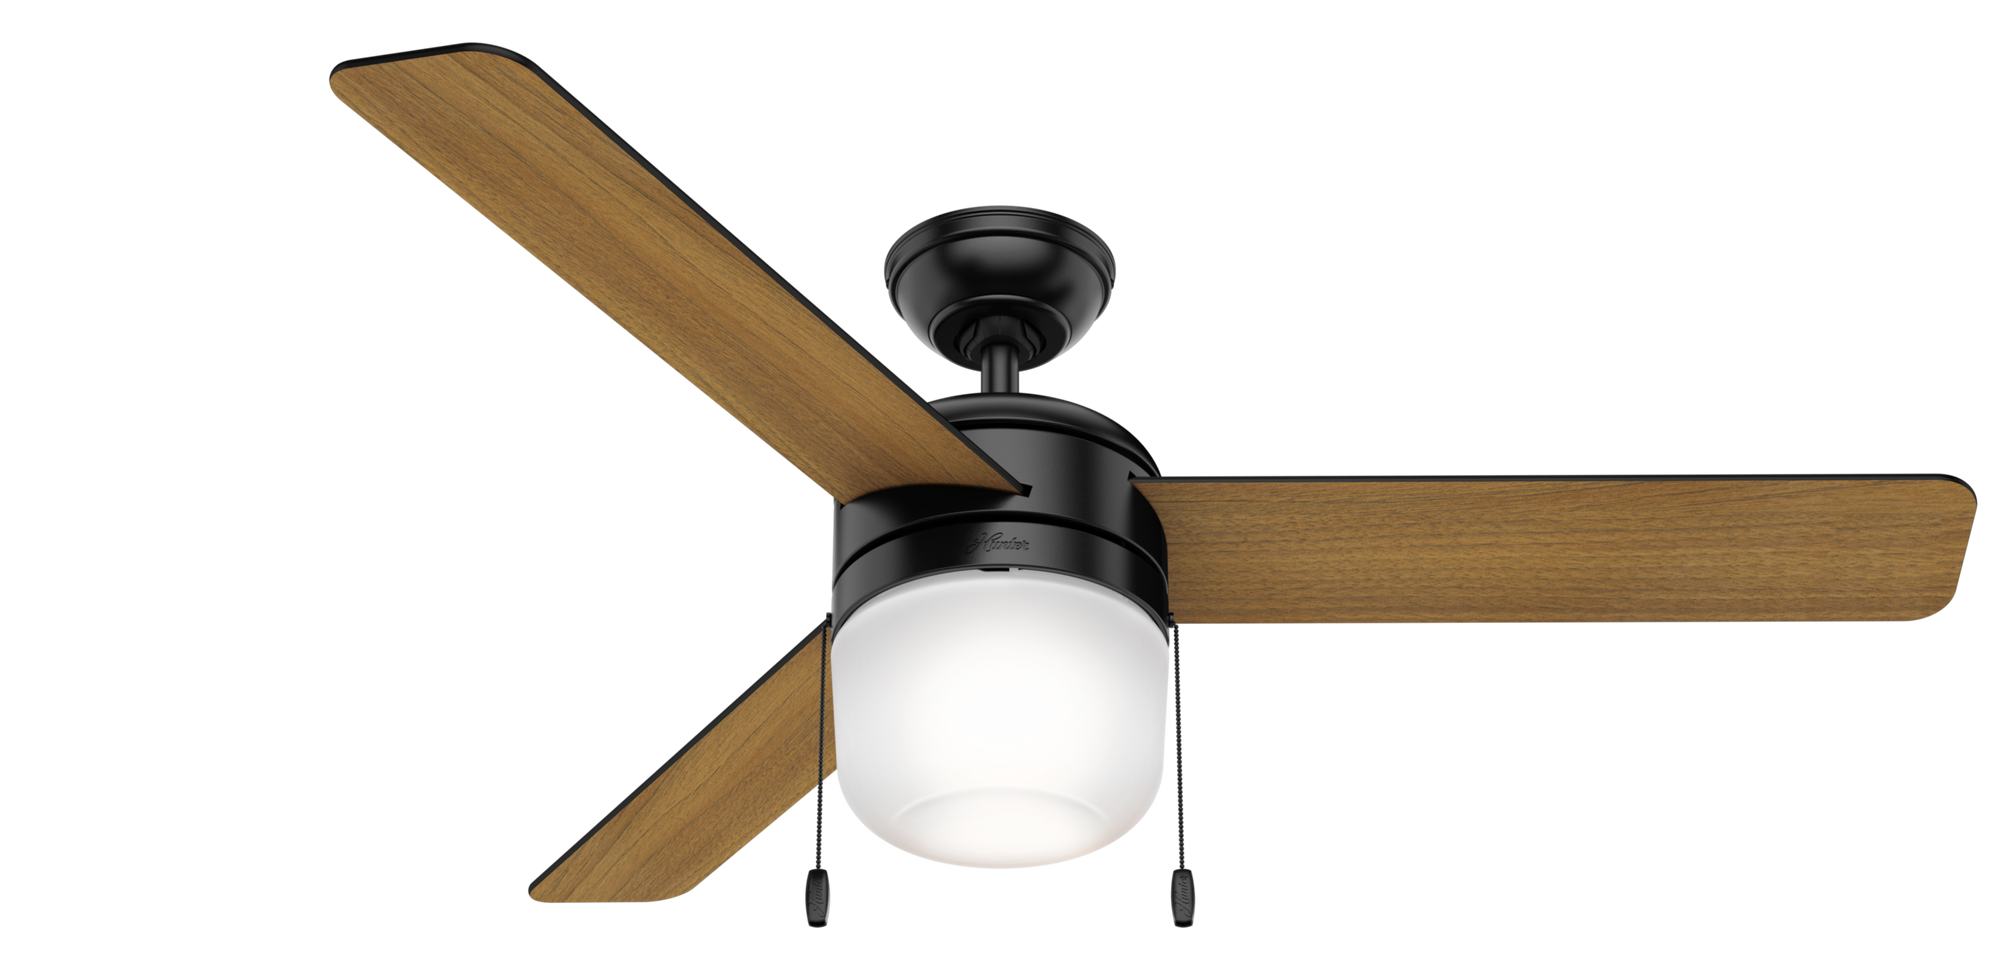 Hunter Indoor Acumen Ceiling Fan with LED LightJD inch, Black, 59404